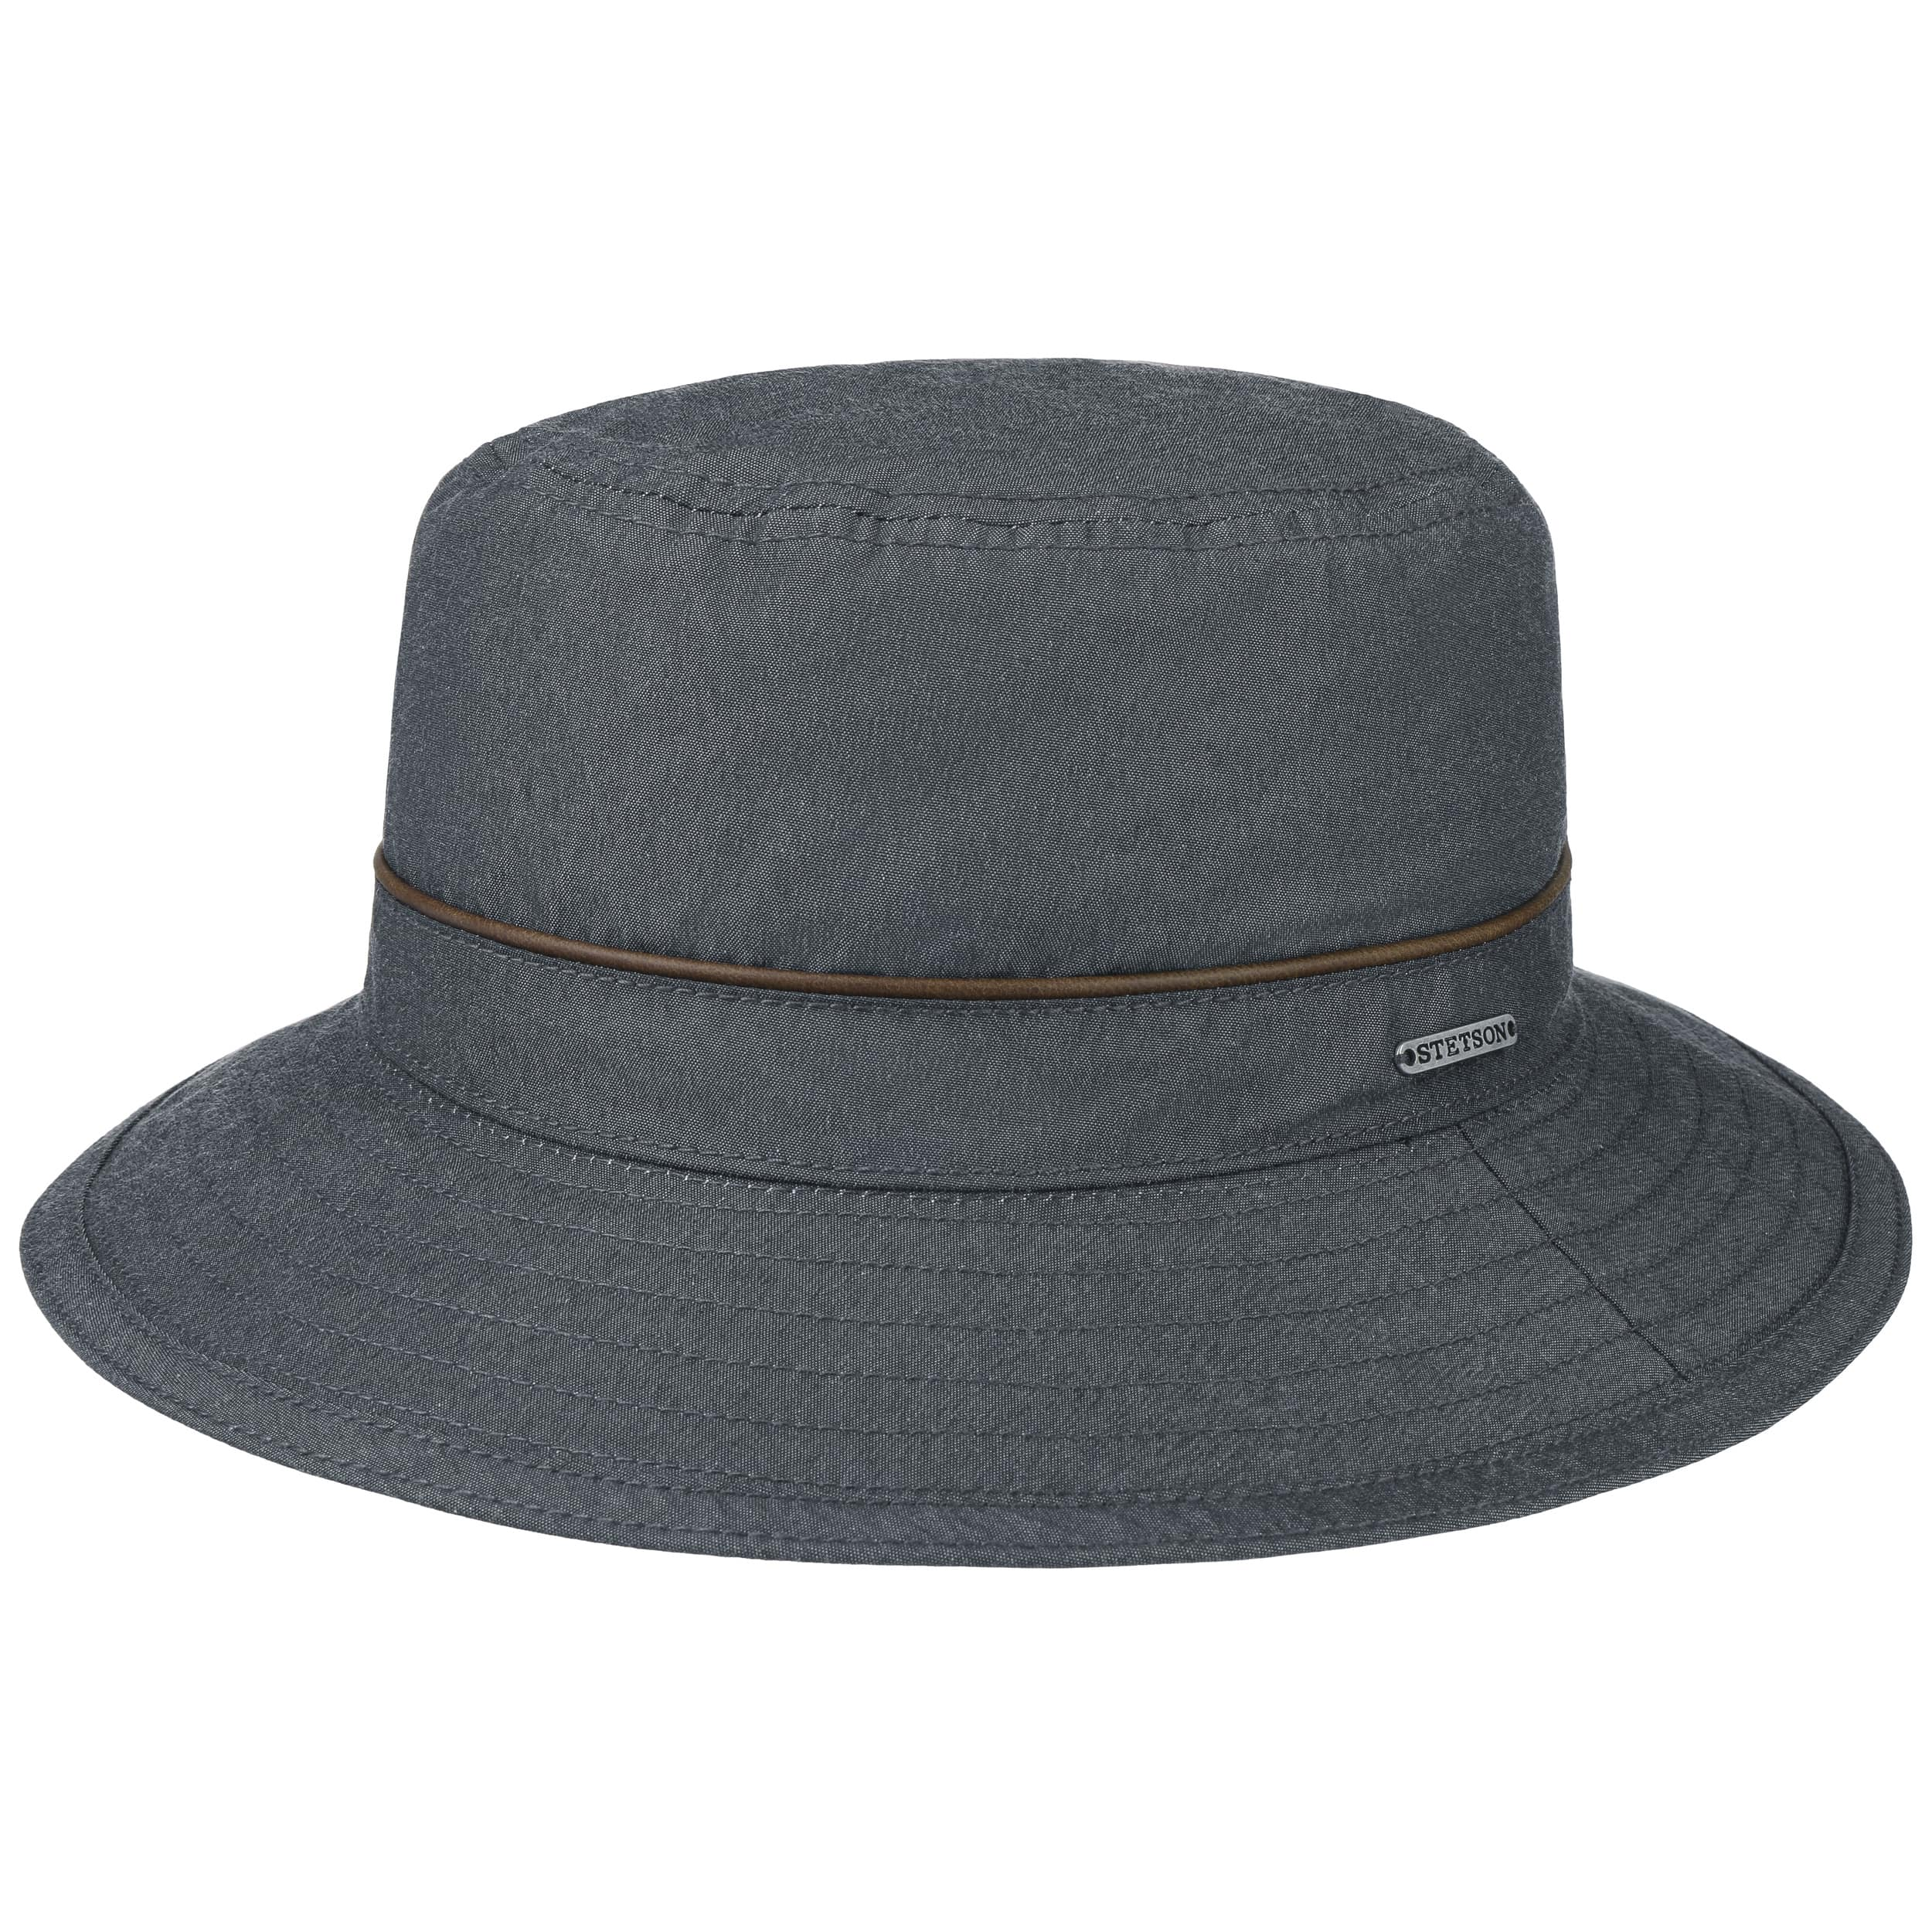 Stetson Chapeau Outdoor Waxed Cotton gris foncé XL (60-61 cm)